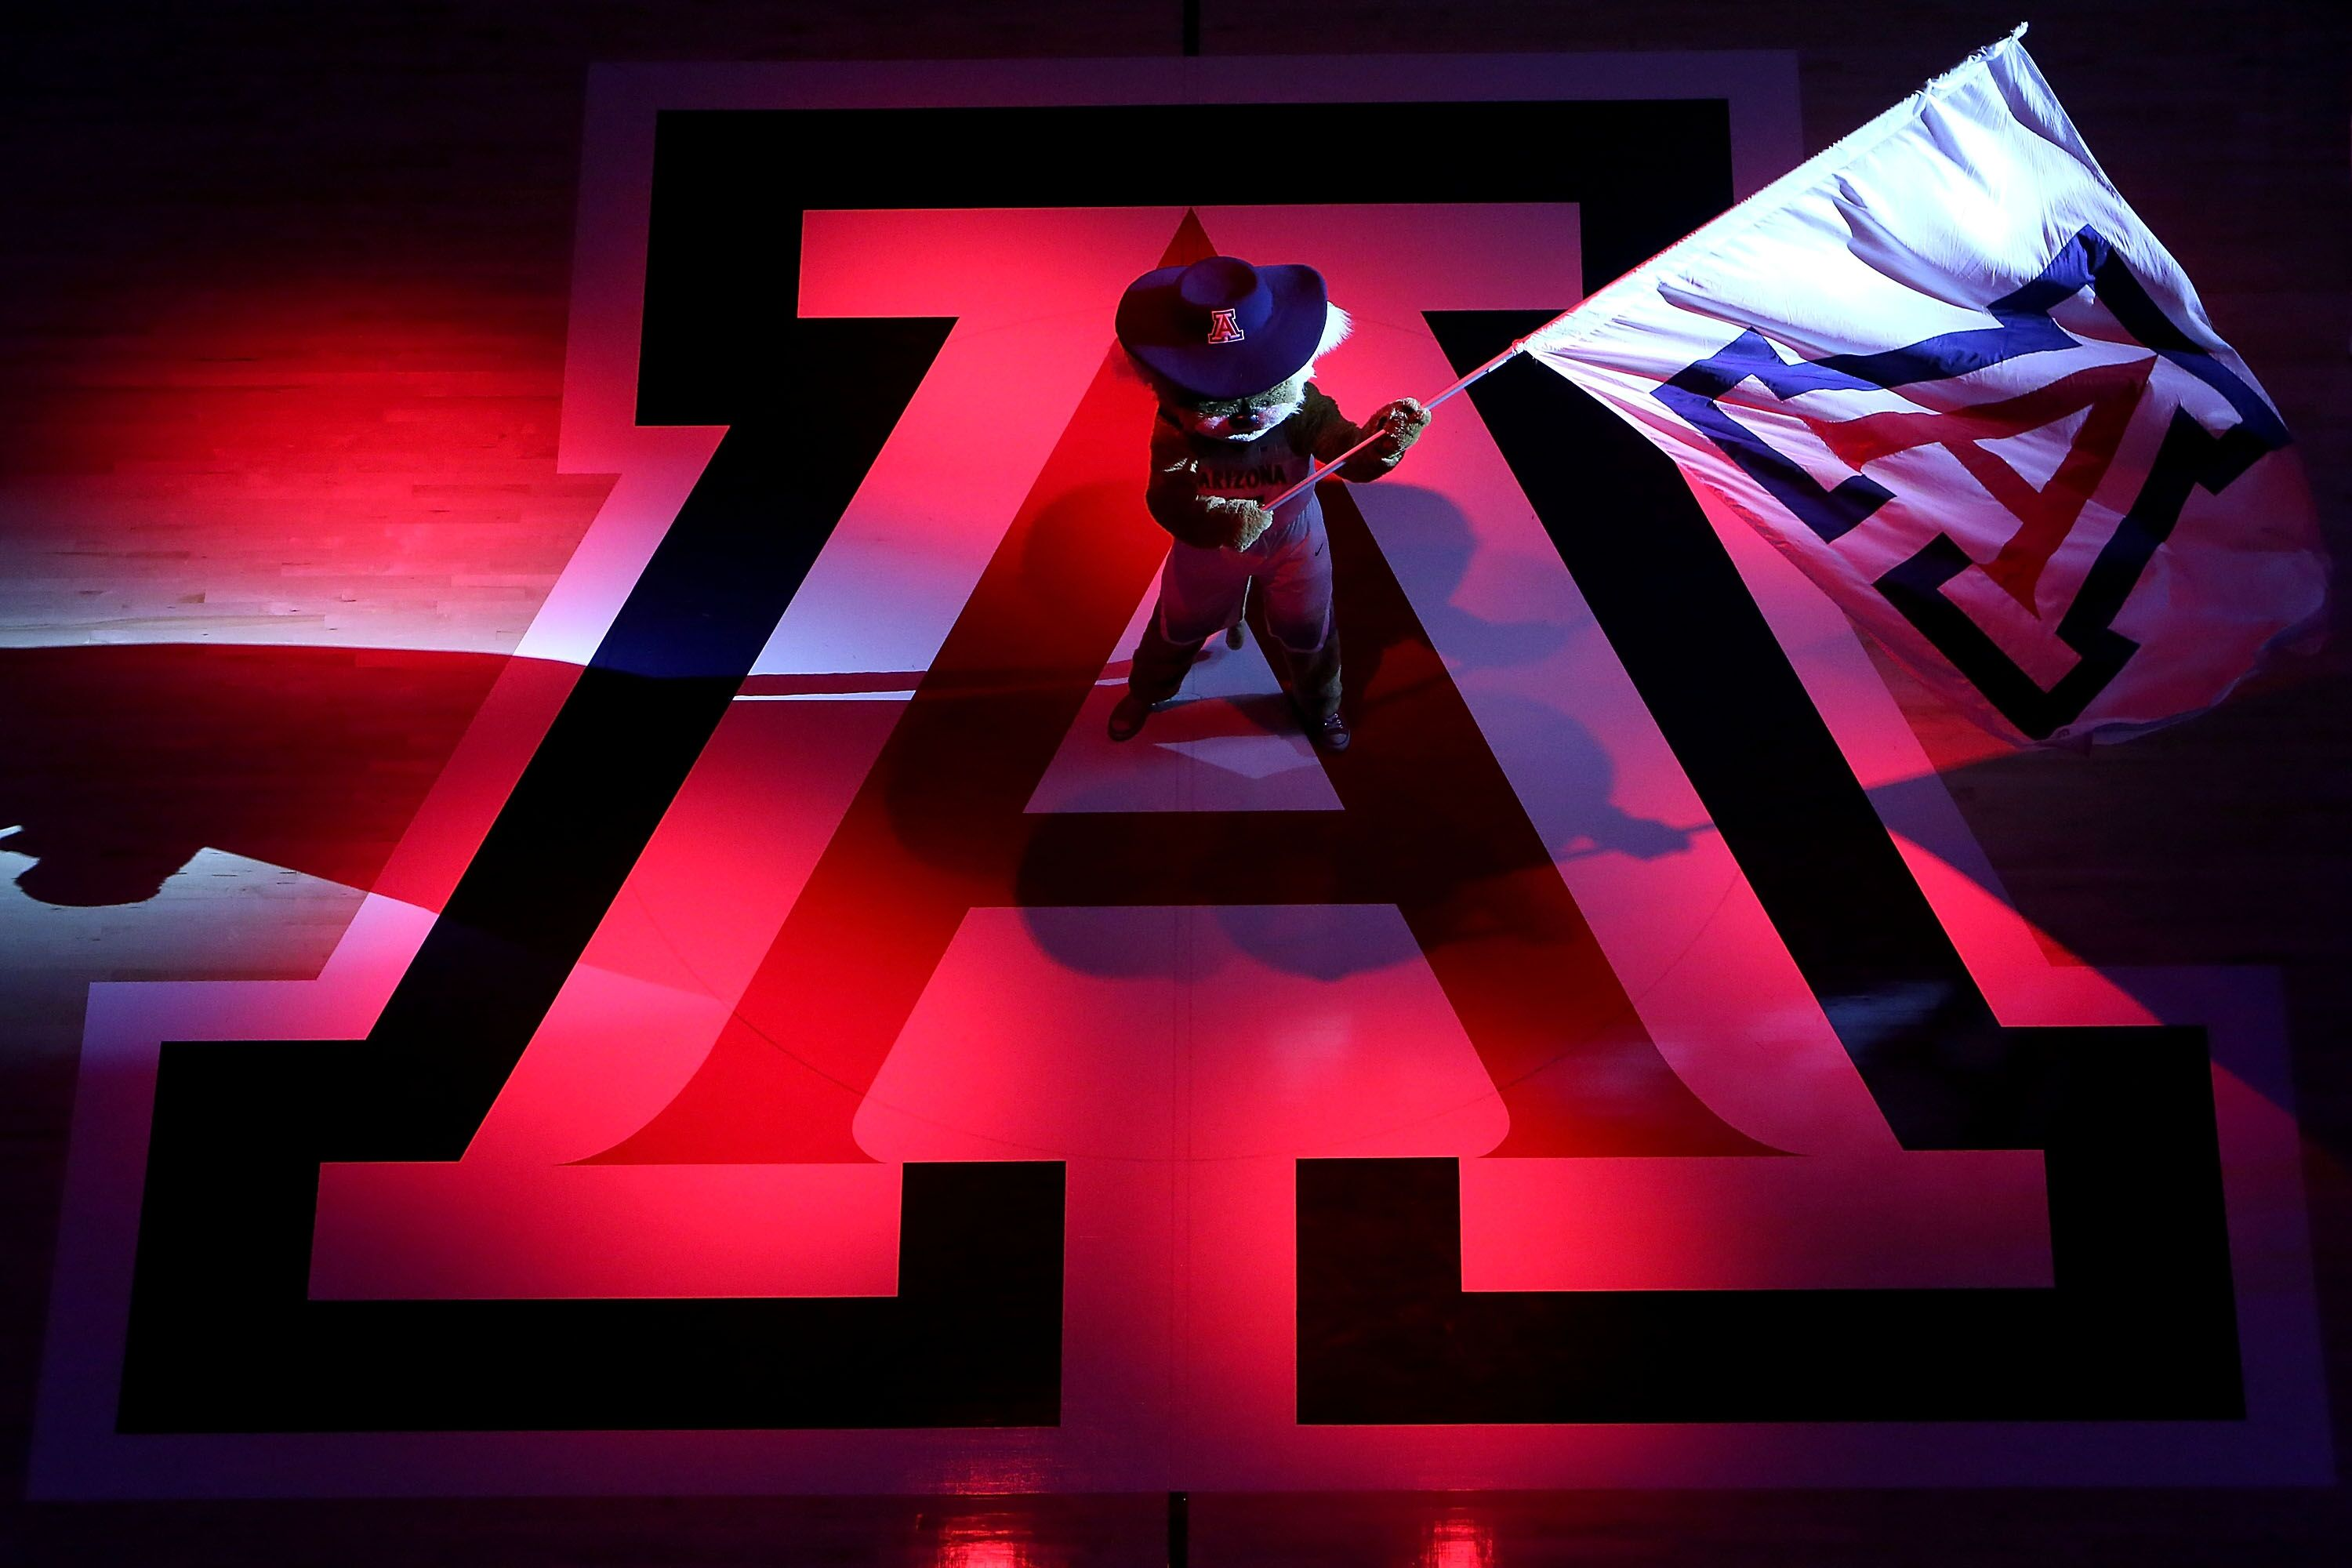 Arizona Basketball: Arizona vs. Gonzaga, Game of the Year!